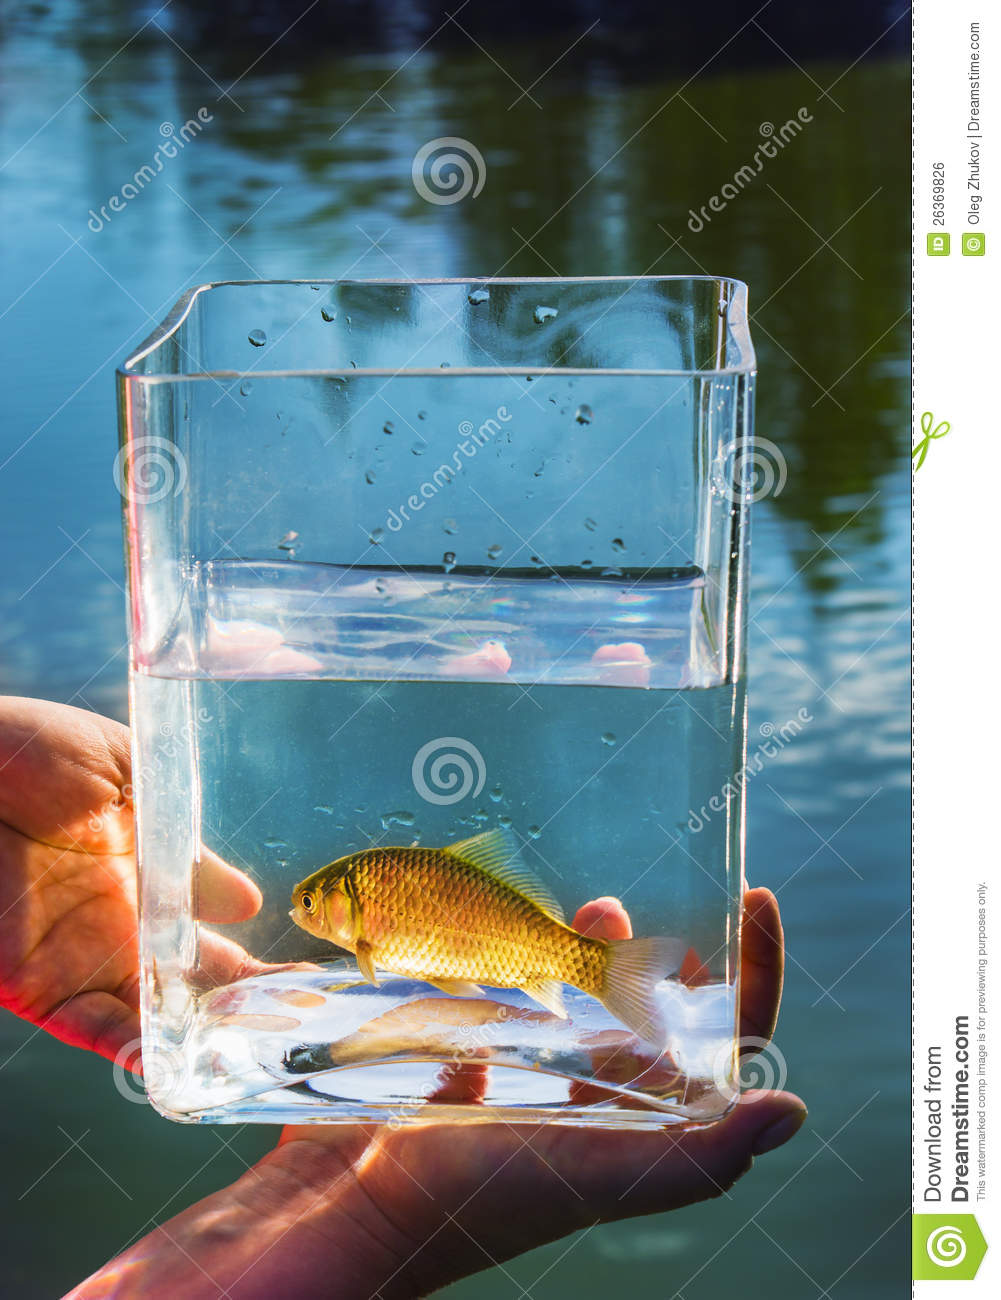 Small fish in a glass jar royalty free stock image image for Fish in a jar